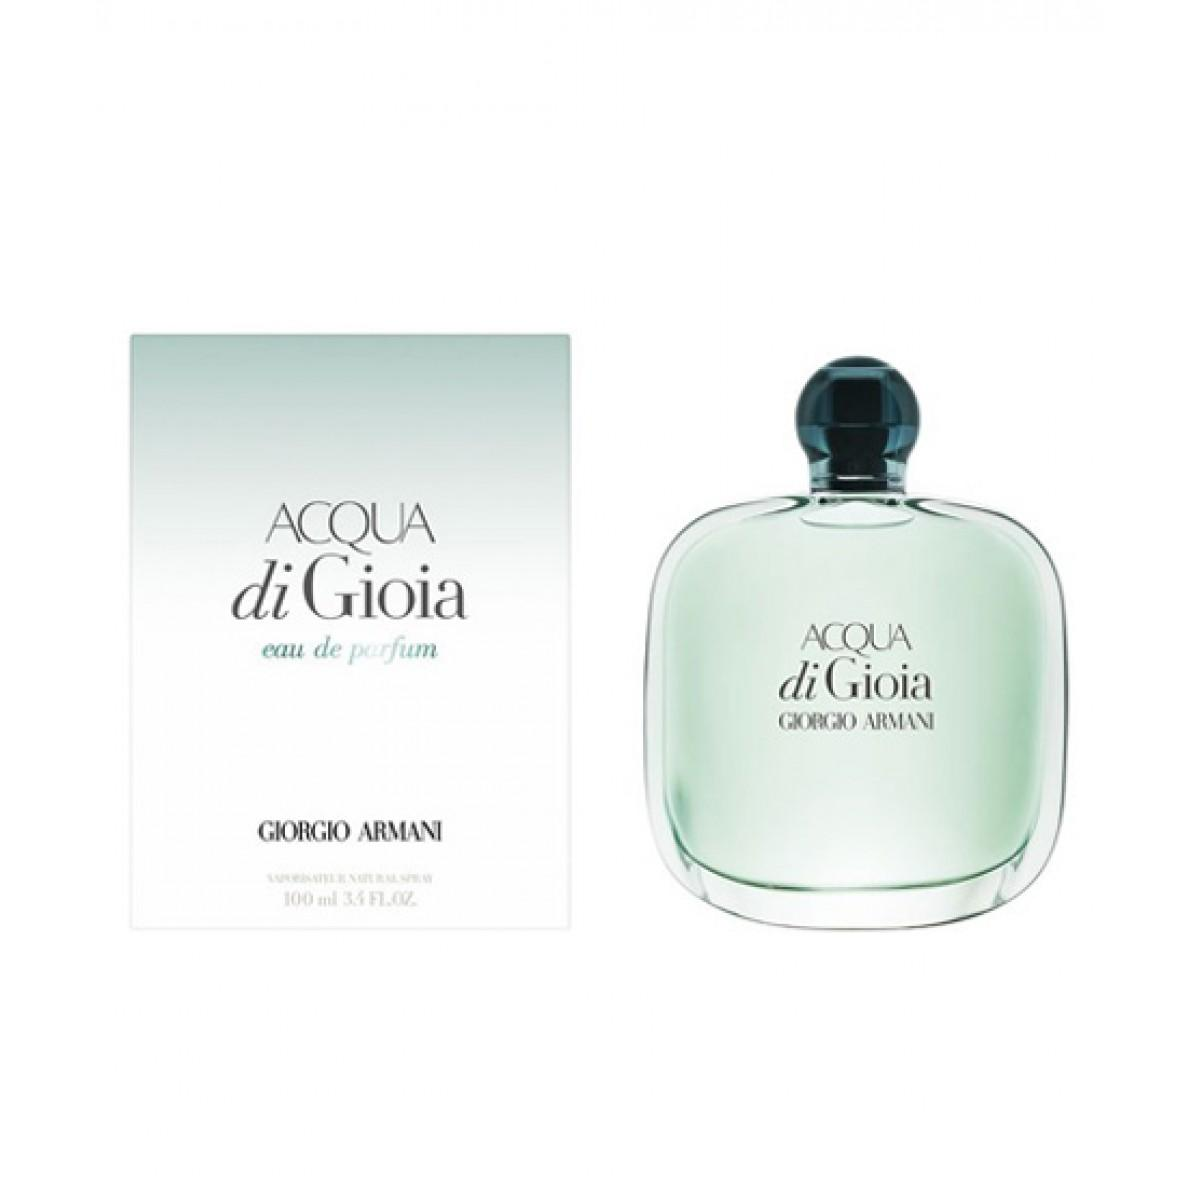 b36ed2dfcf48f0 Beauty Giorgio Armani Fragrances In Nepal At Best Price - Daraz.com.np